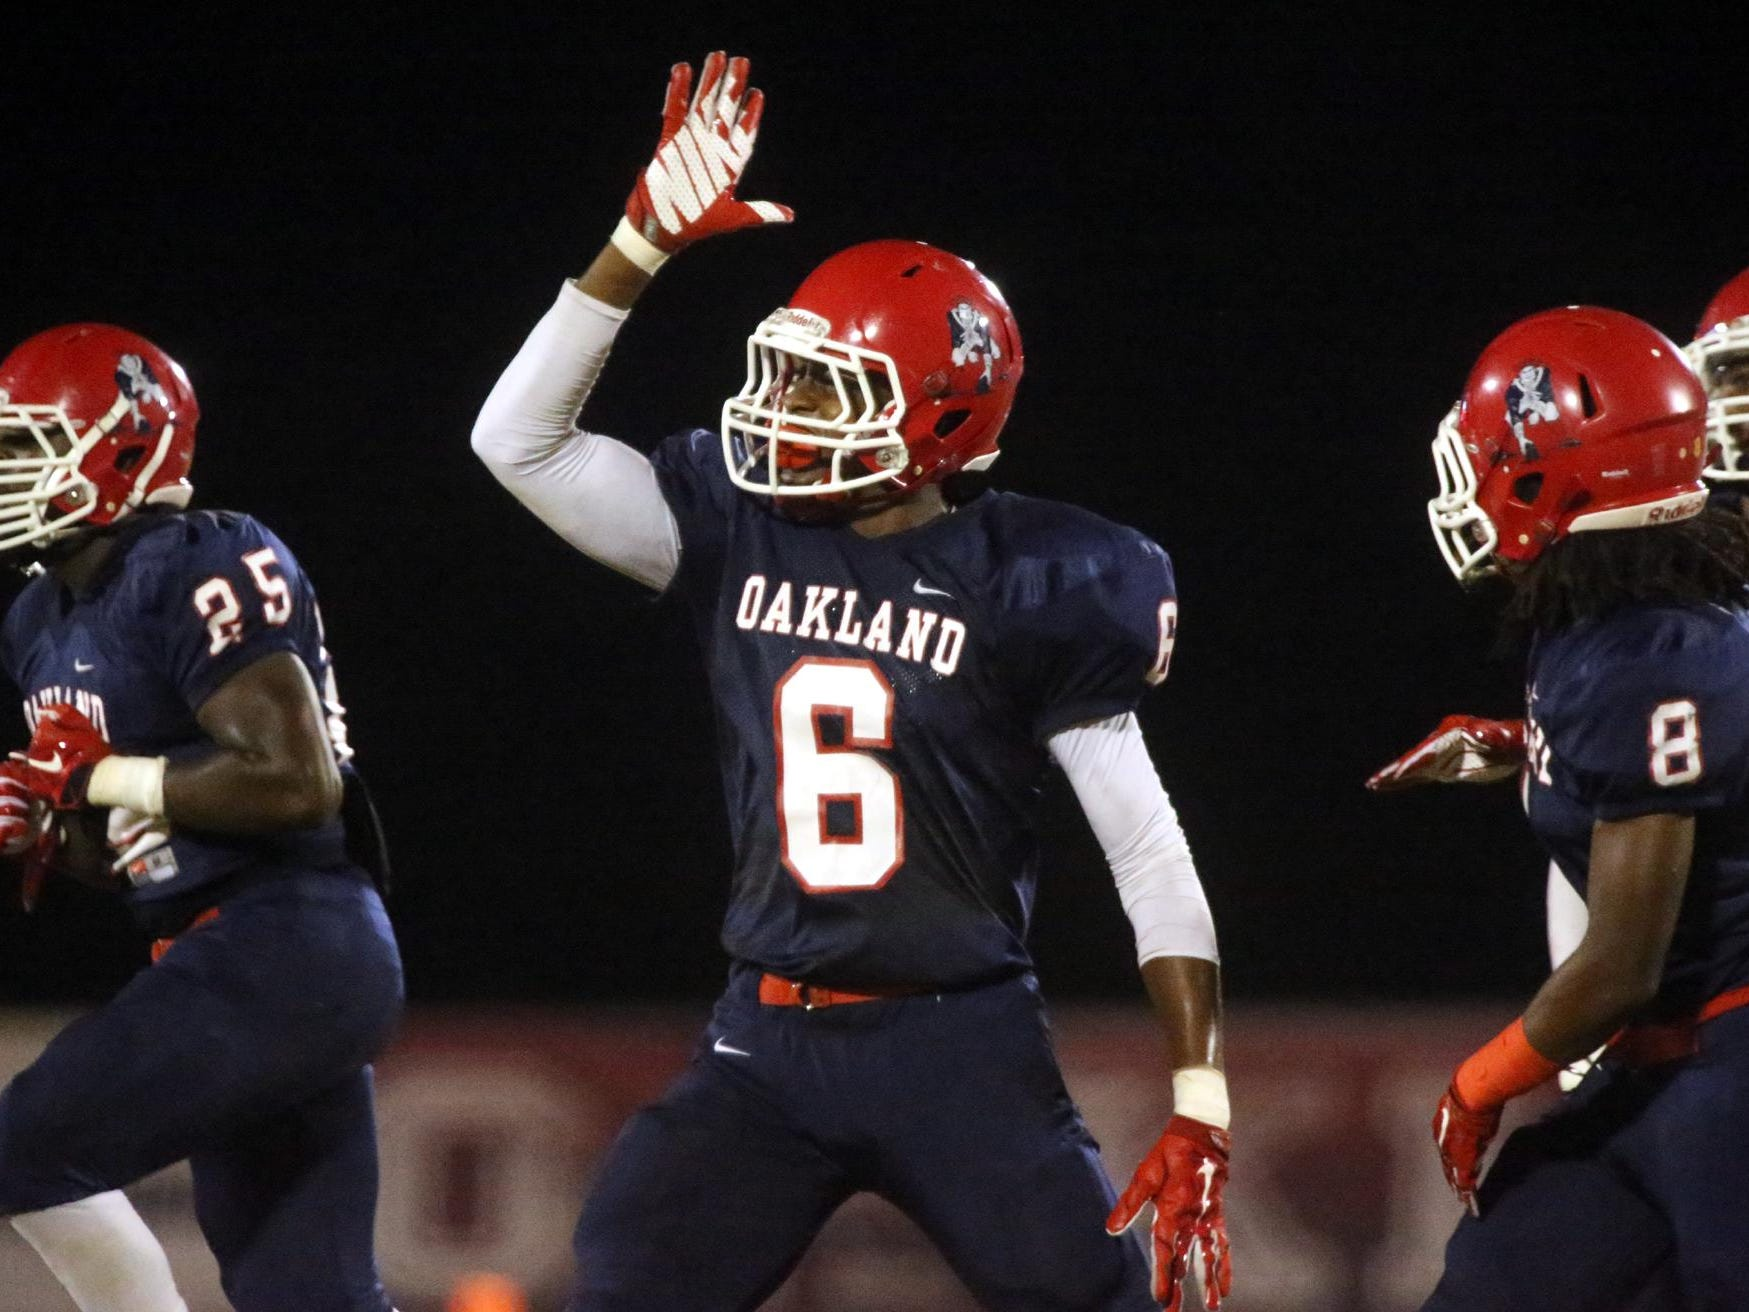 Oakland's Kaleb Oliver (6) celebrates making an interception during the game against Blackman at Oakland, on Friday Sept. 18, 2015.